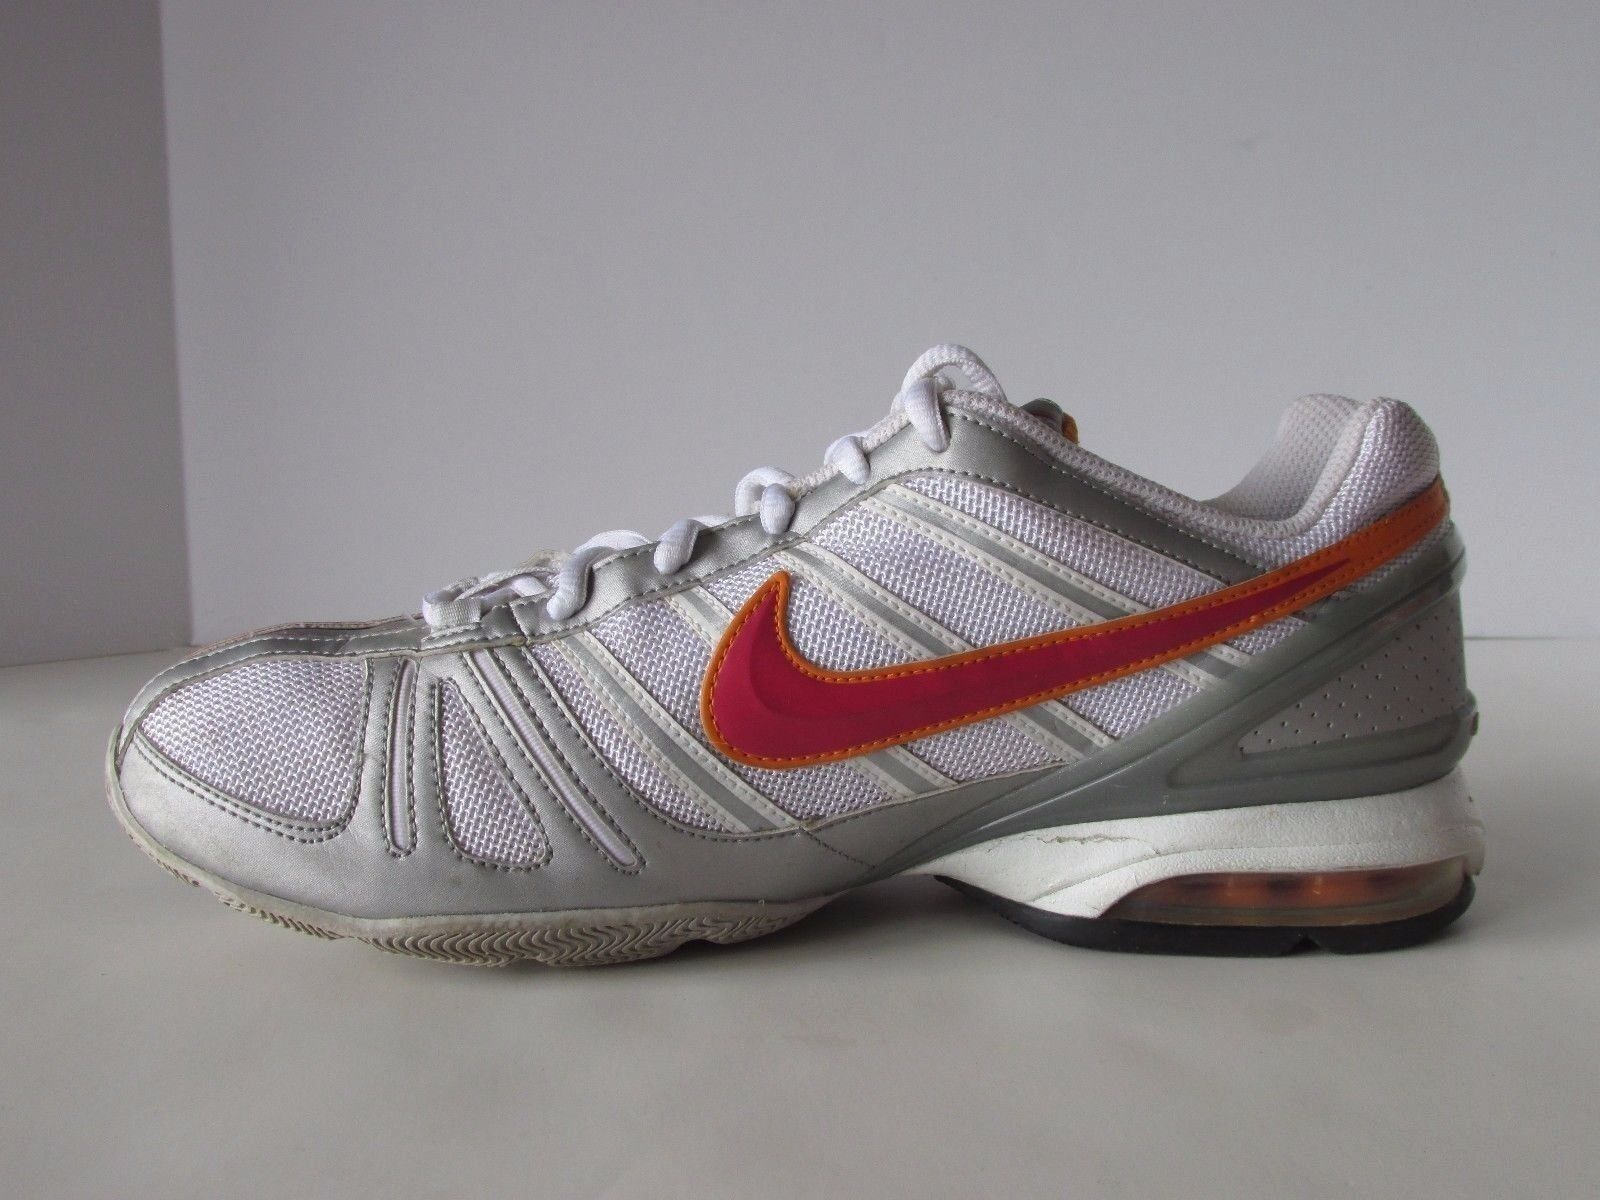 64ce1eb04bfa ... Nike Air Max White Red Red Red Silver Synthetic Mesh Running Shoes  Women s US 9M 64f64a ...